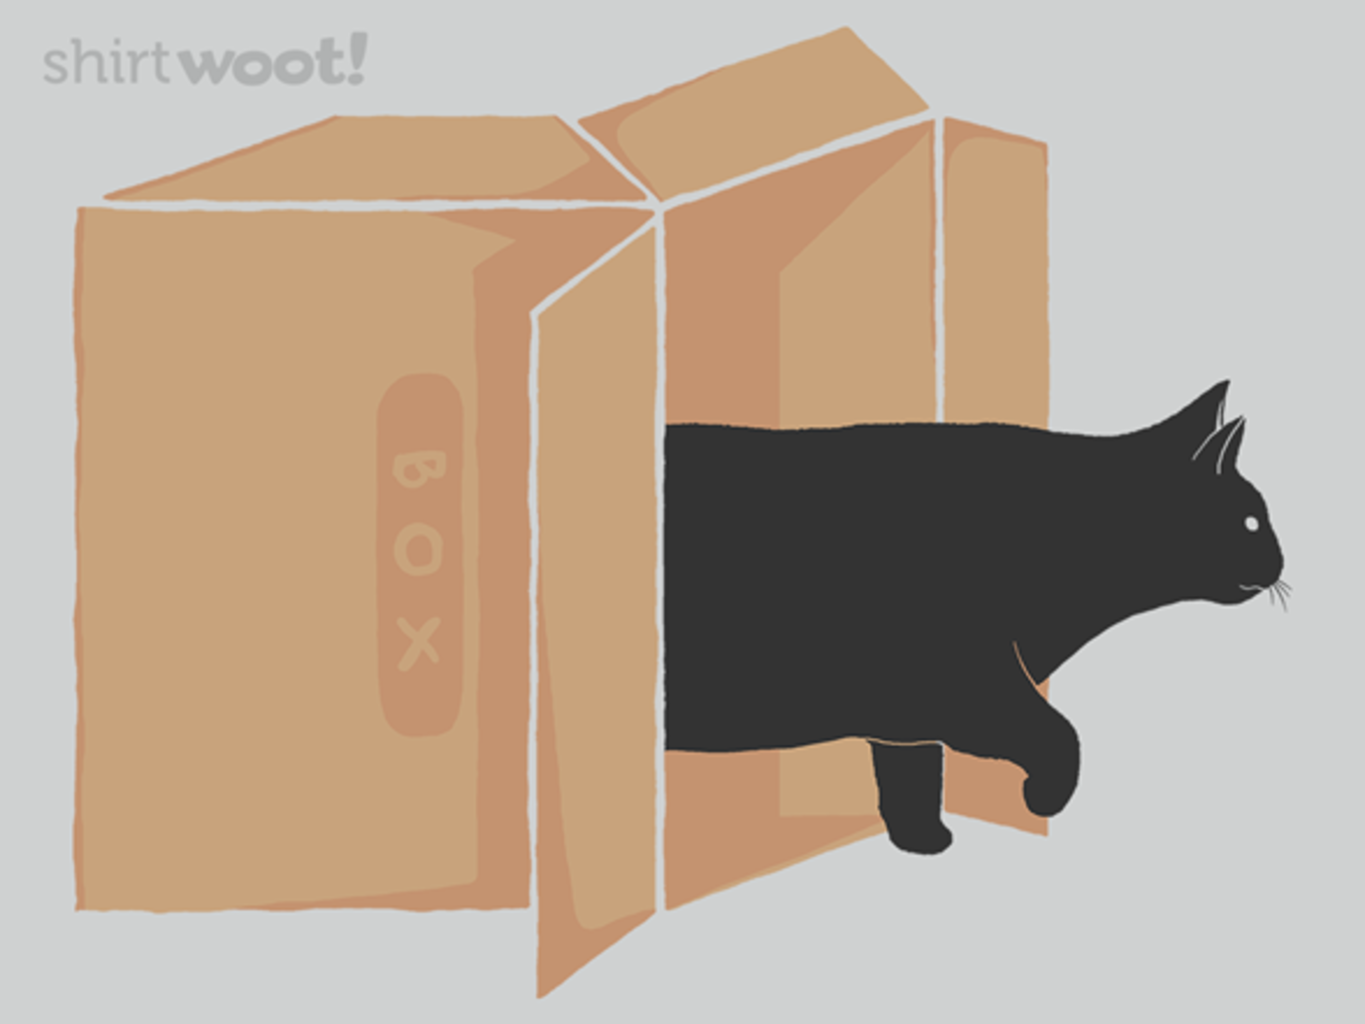 Woot!: Outside the Box